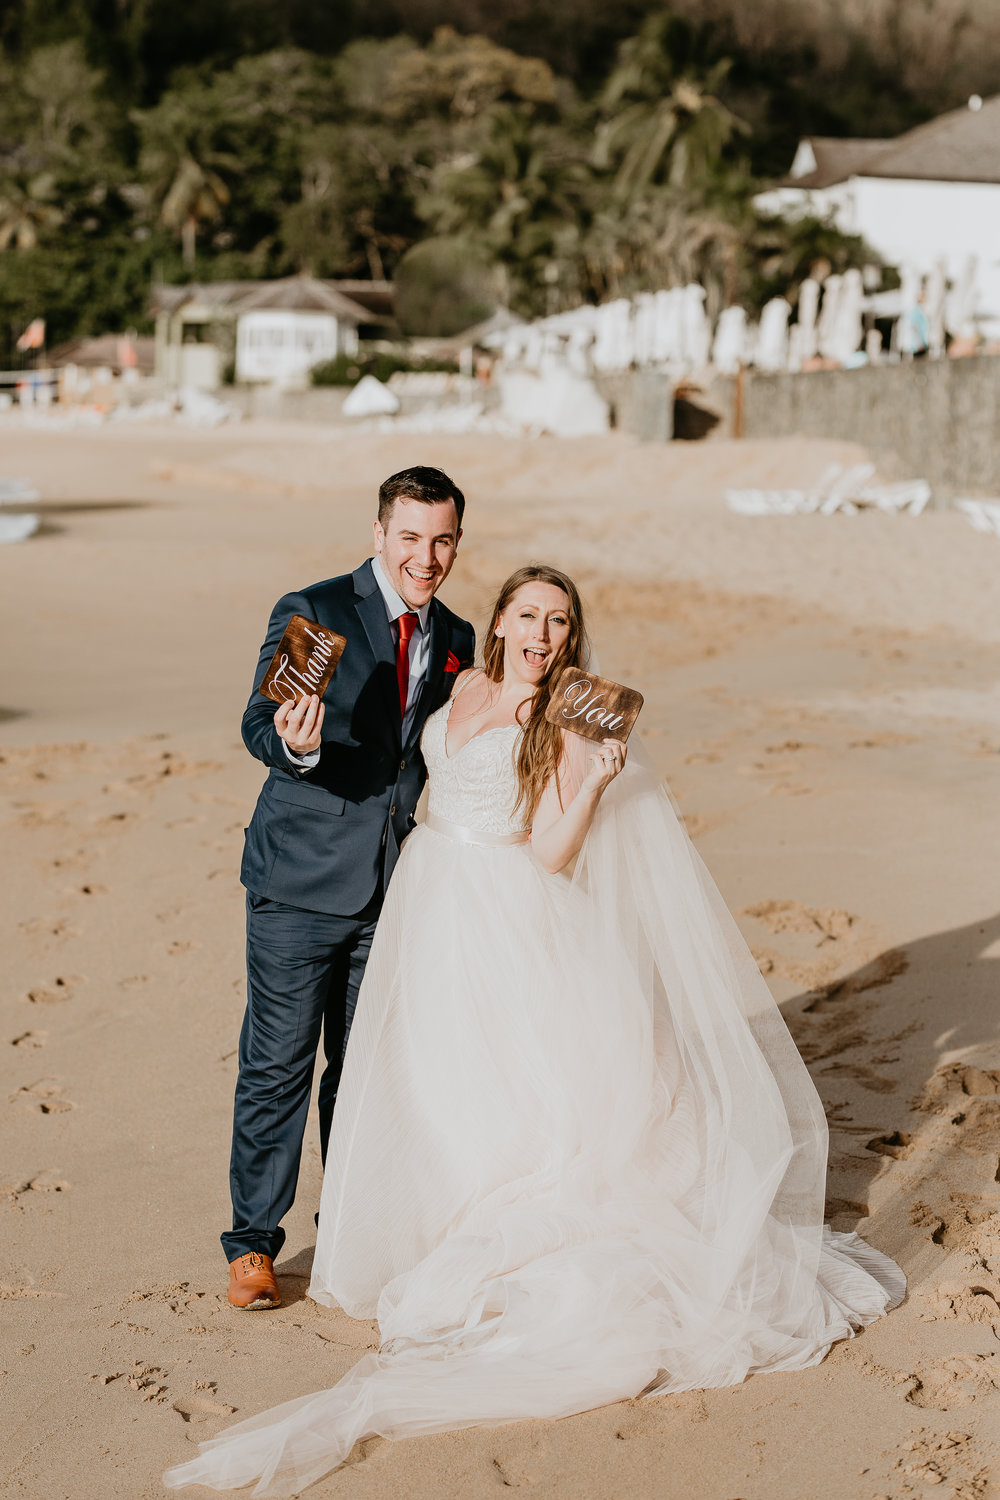 nicole-daacke-photography-destination-wedding-in-st-lucia-sandals-la-toc-intimate-island-wedding-carribean-elopement-photographer-chill-island-wedding-97.jpg